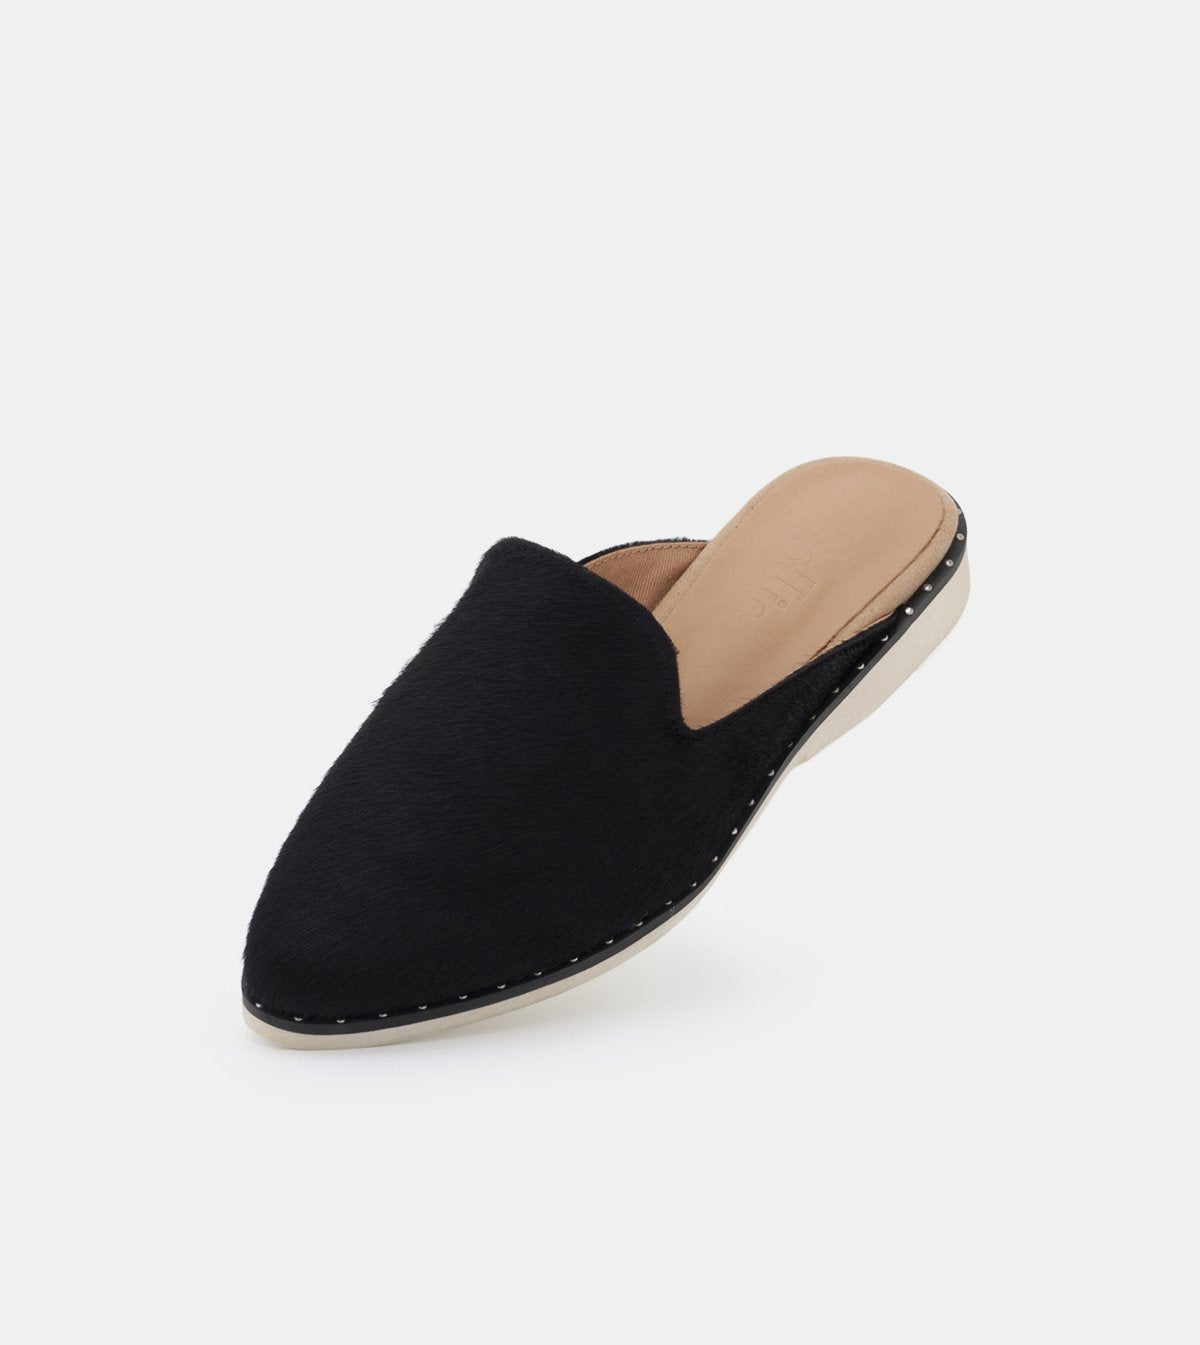 Rollie Madison Mule Stud Black Pony Shoes